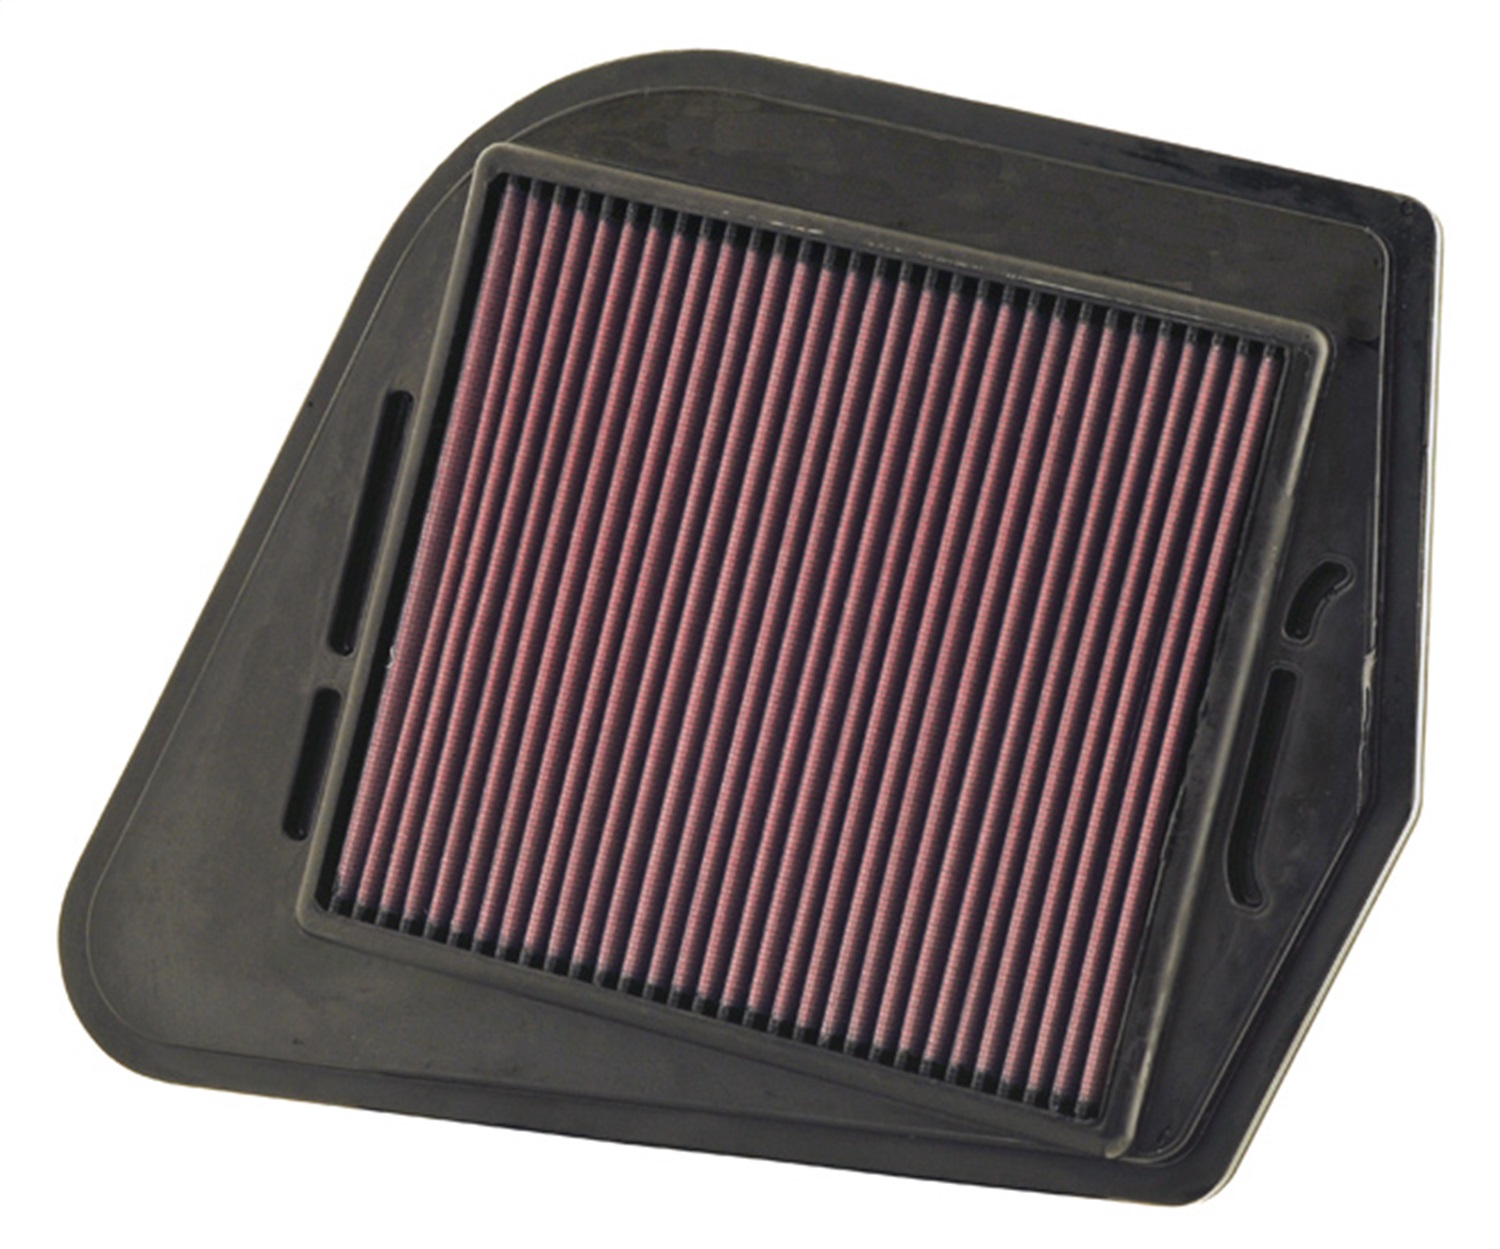 K&N Filters 33-2251 Air Filter Fits 03-07 CTS 33-2251